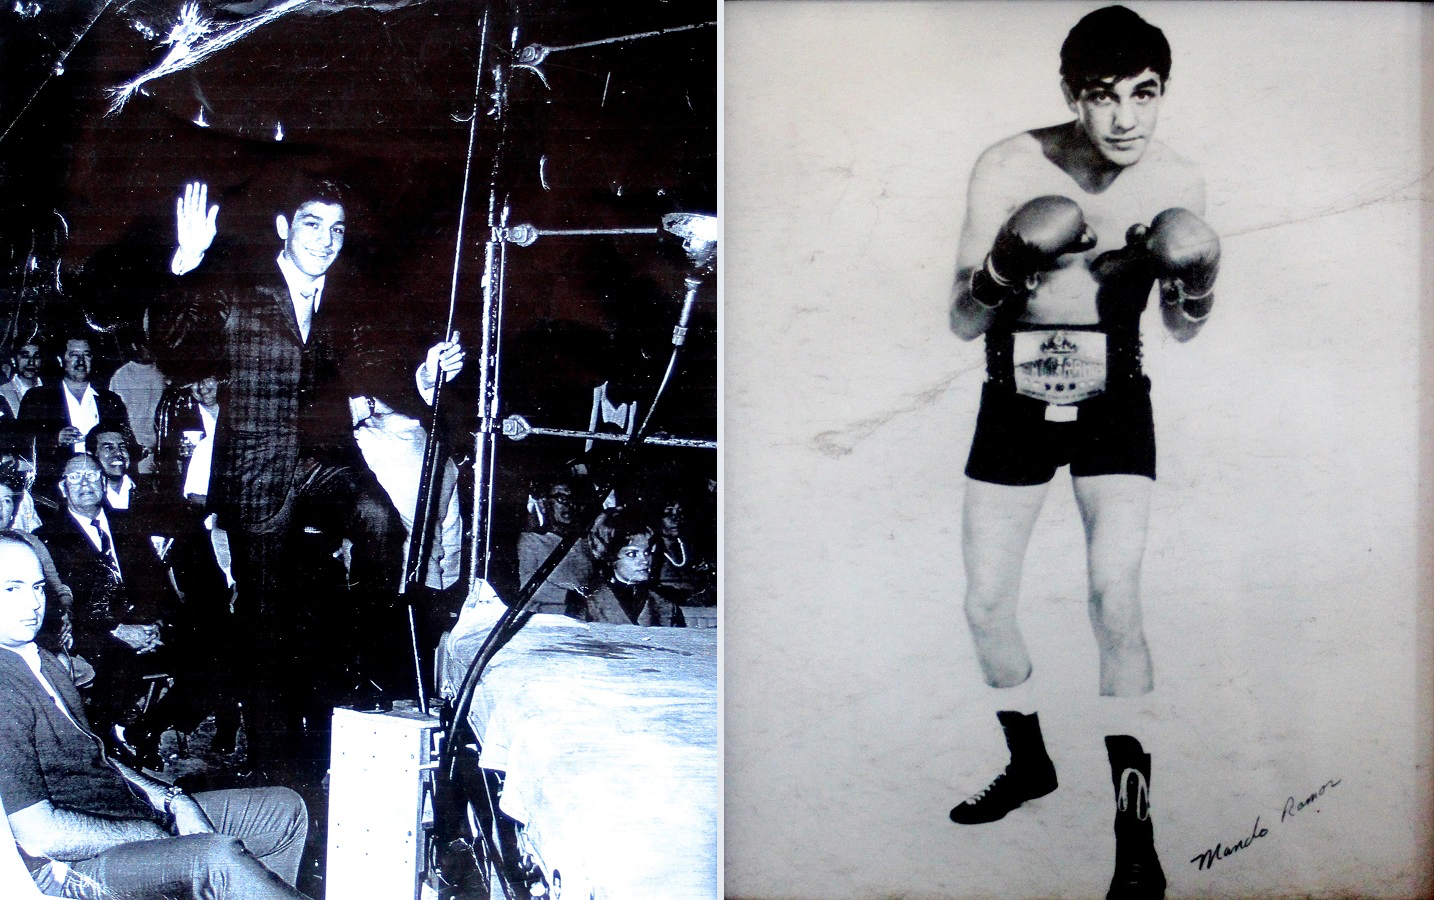 Son Talks About His Father, Long Beach Boxing Champ Mando